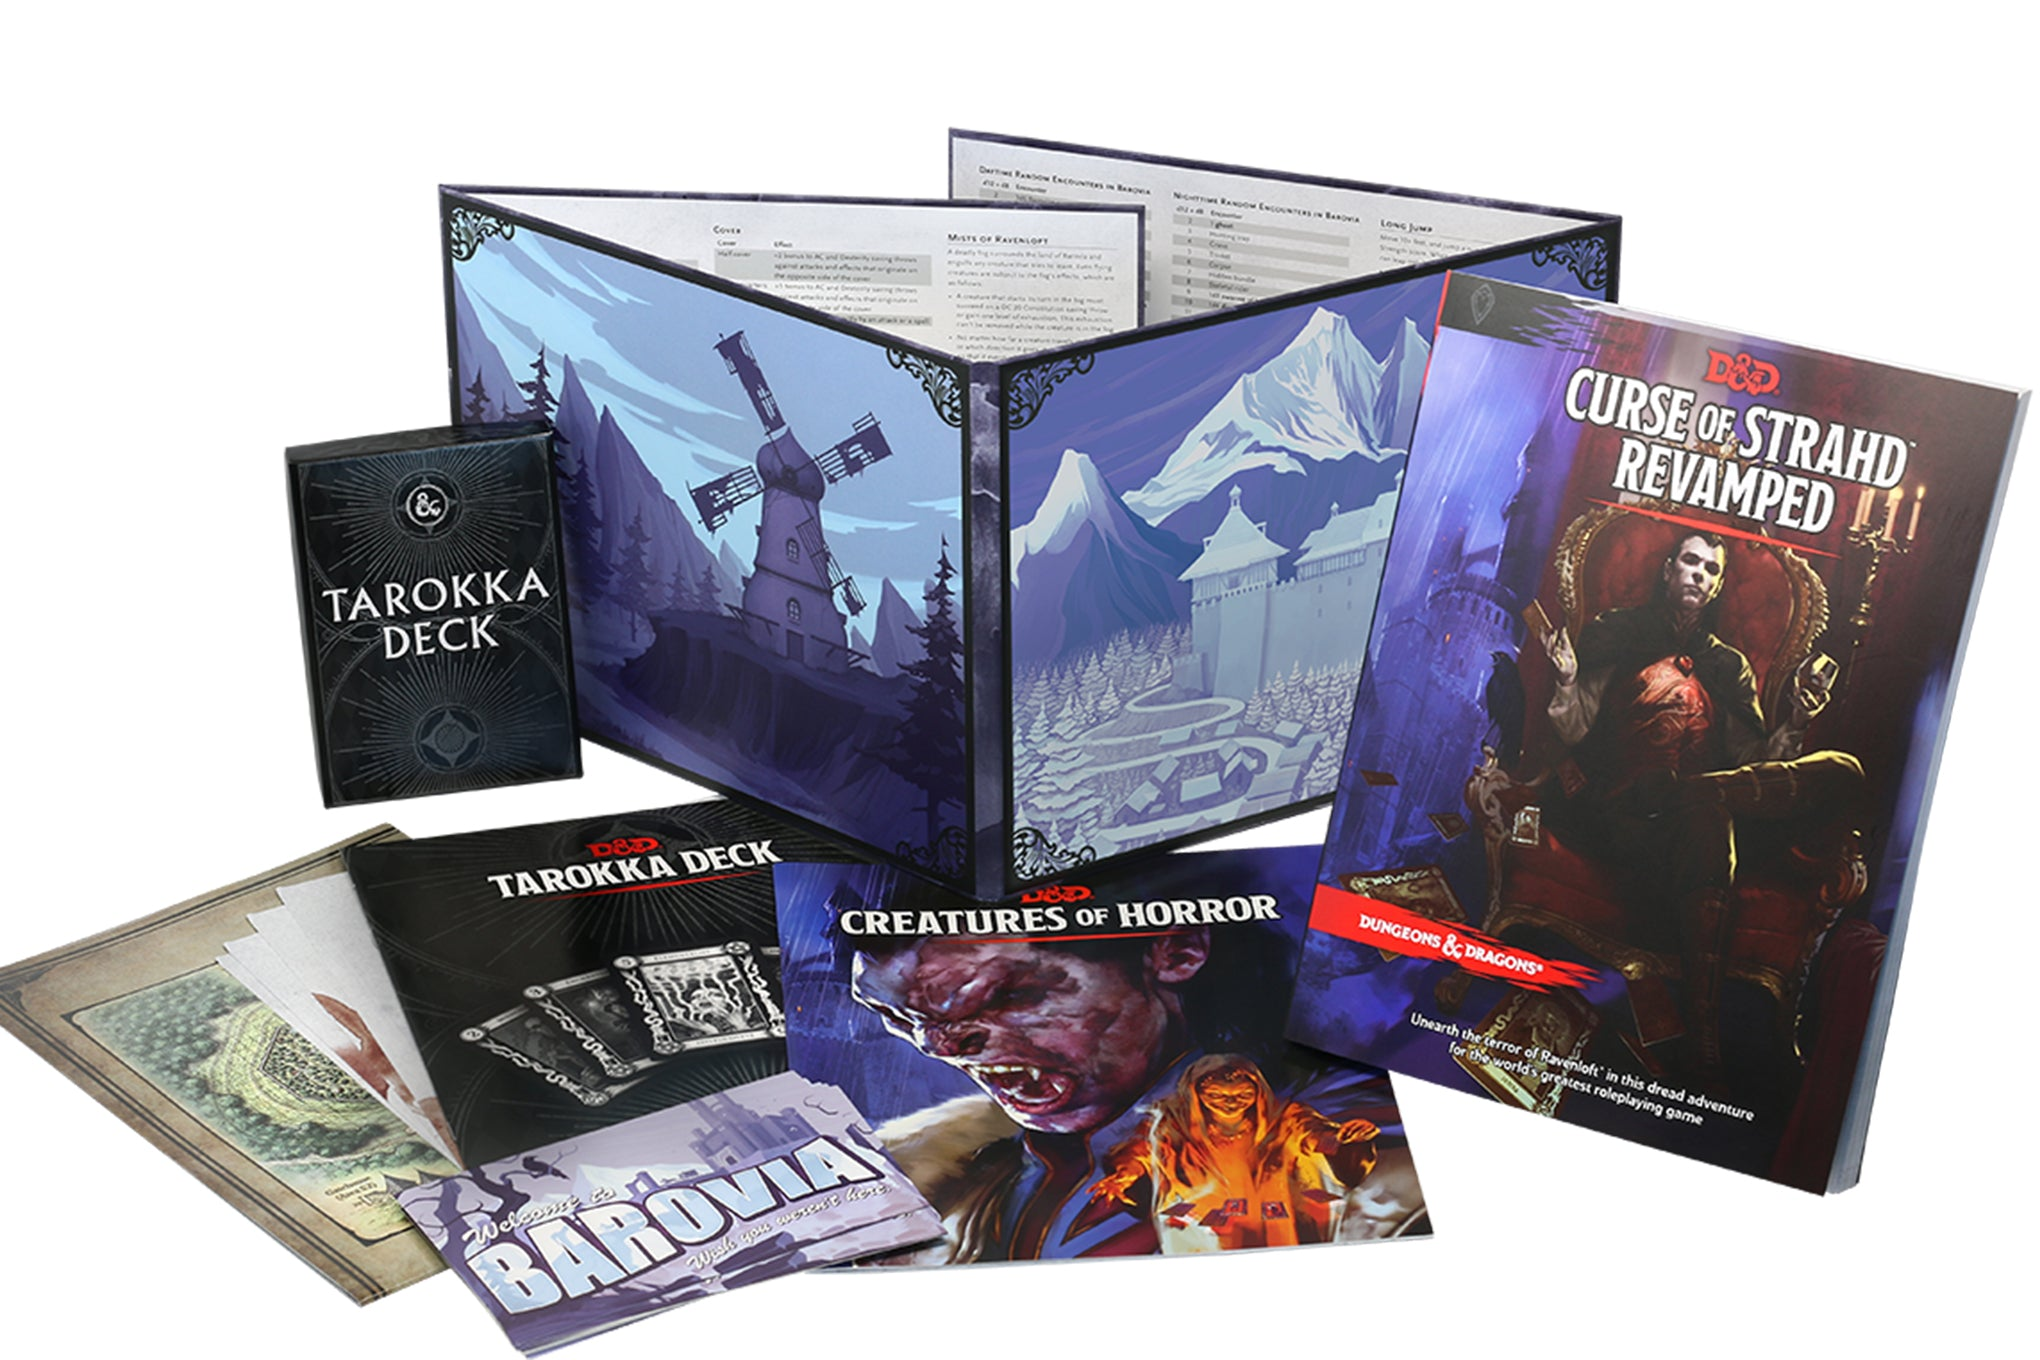 Picture of the contents of the Curse of Strahd Revamped box